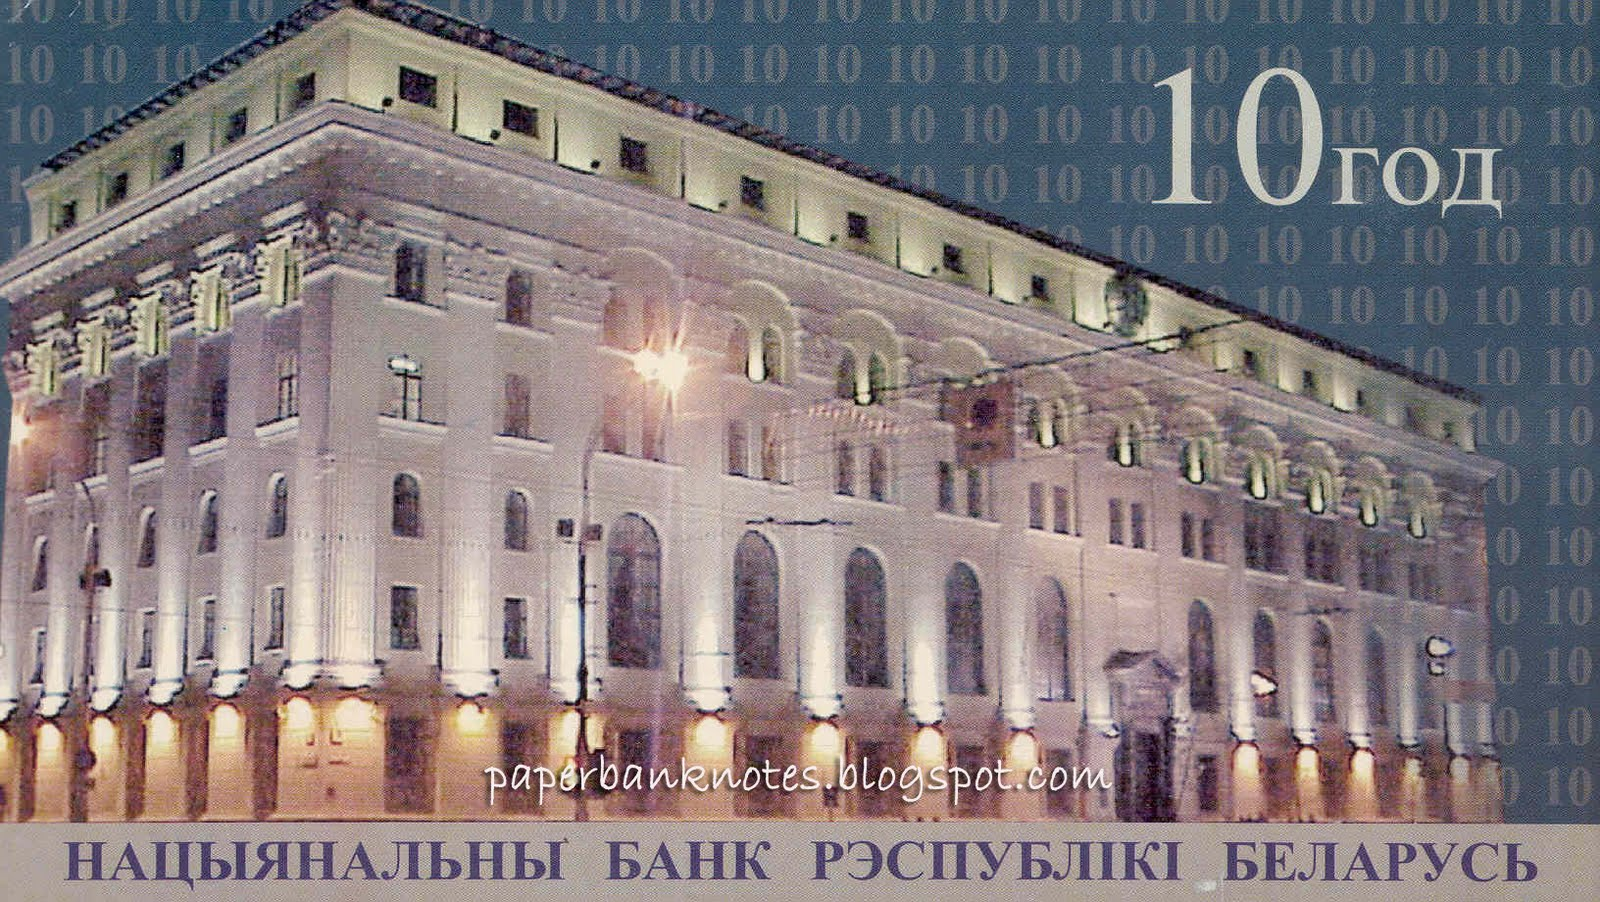 central bank of belarus The central bank of belarus has cleared the way for domestic banks to use blockchain as part of their processes of transmitting bank guarantees the move, revealed late last week by the national .